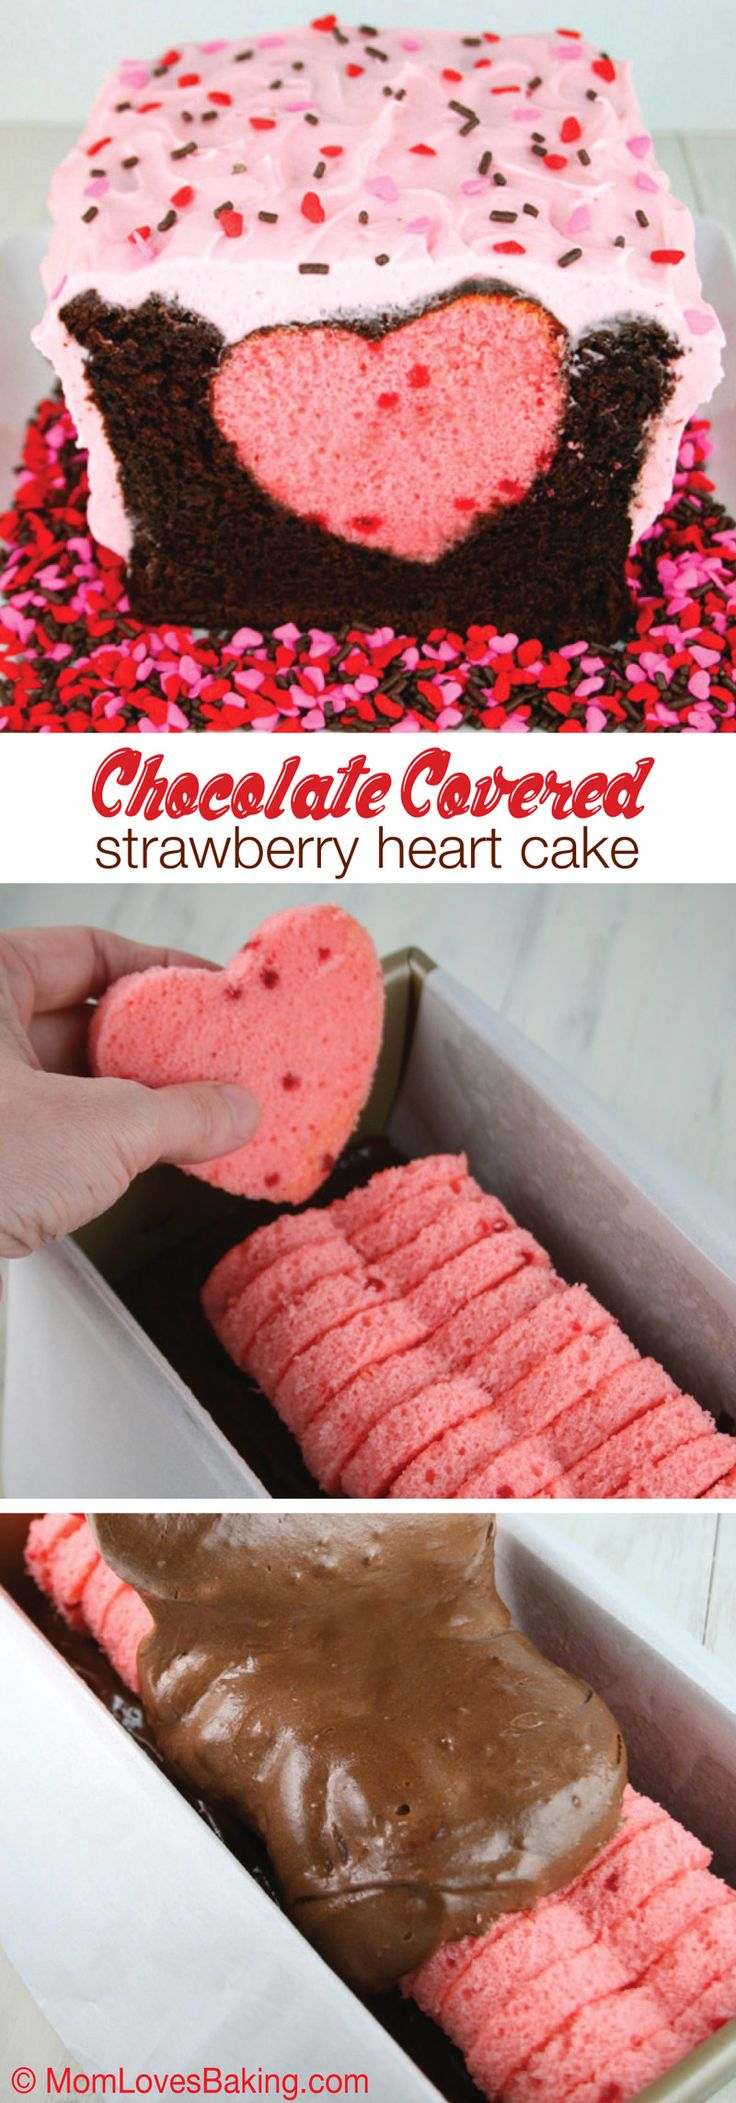 An adorable cake to satisfy chocolate covered strawberry lovers. Super cute with a peek-a-boo pink heart inside.